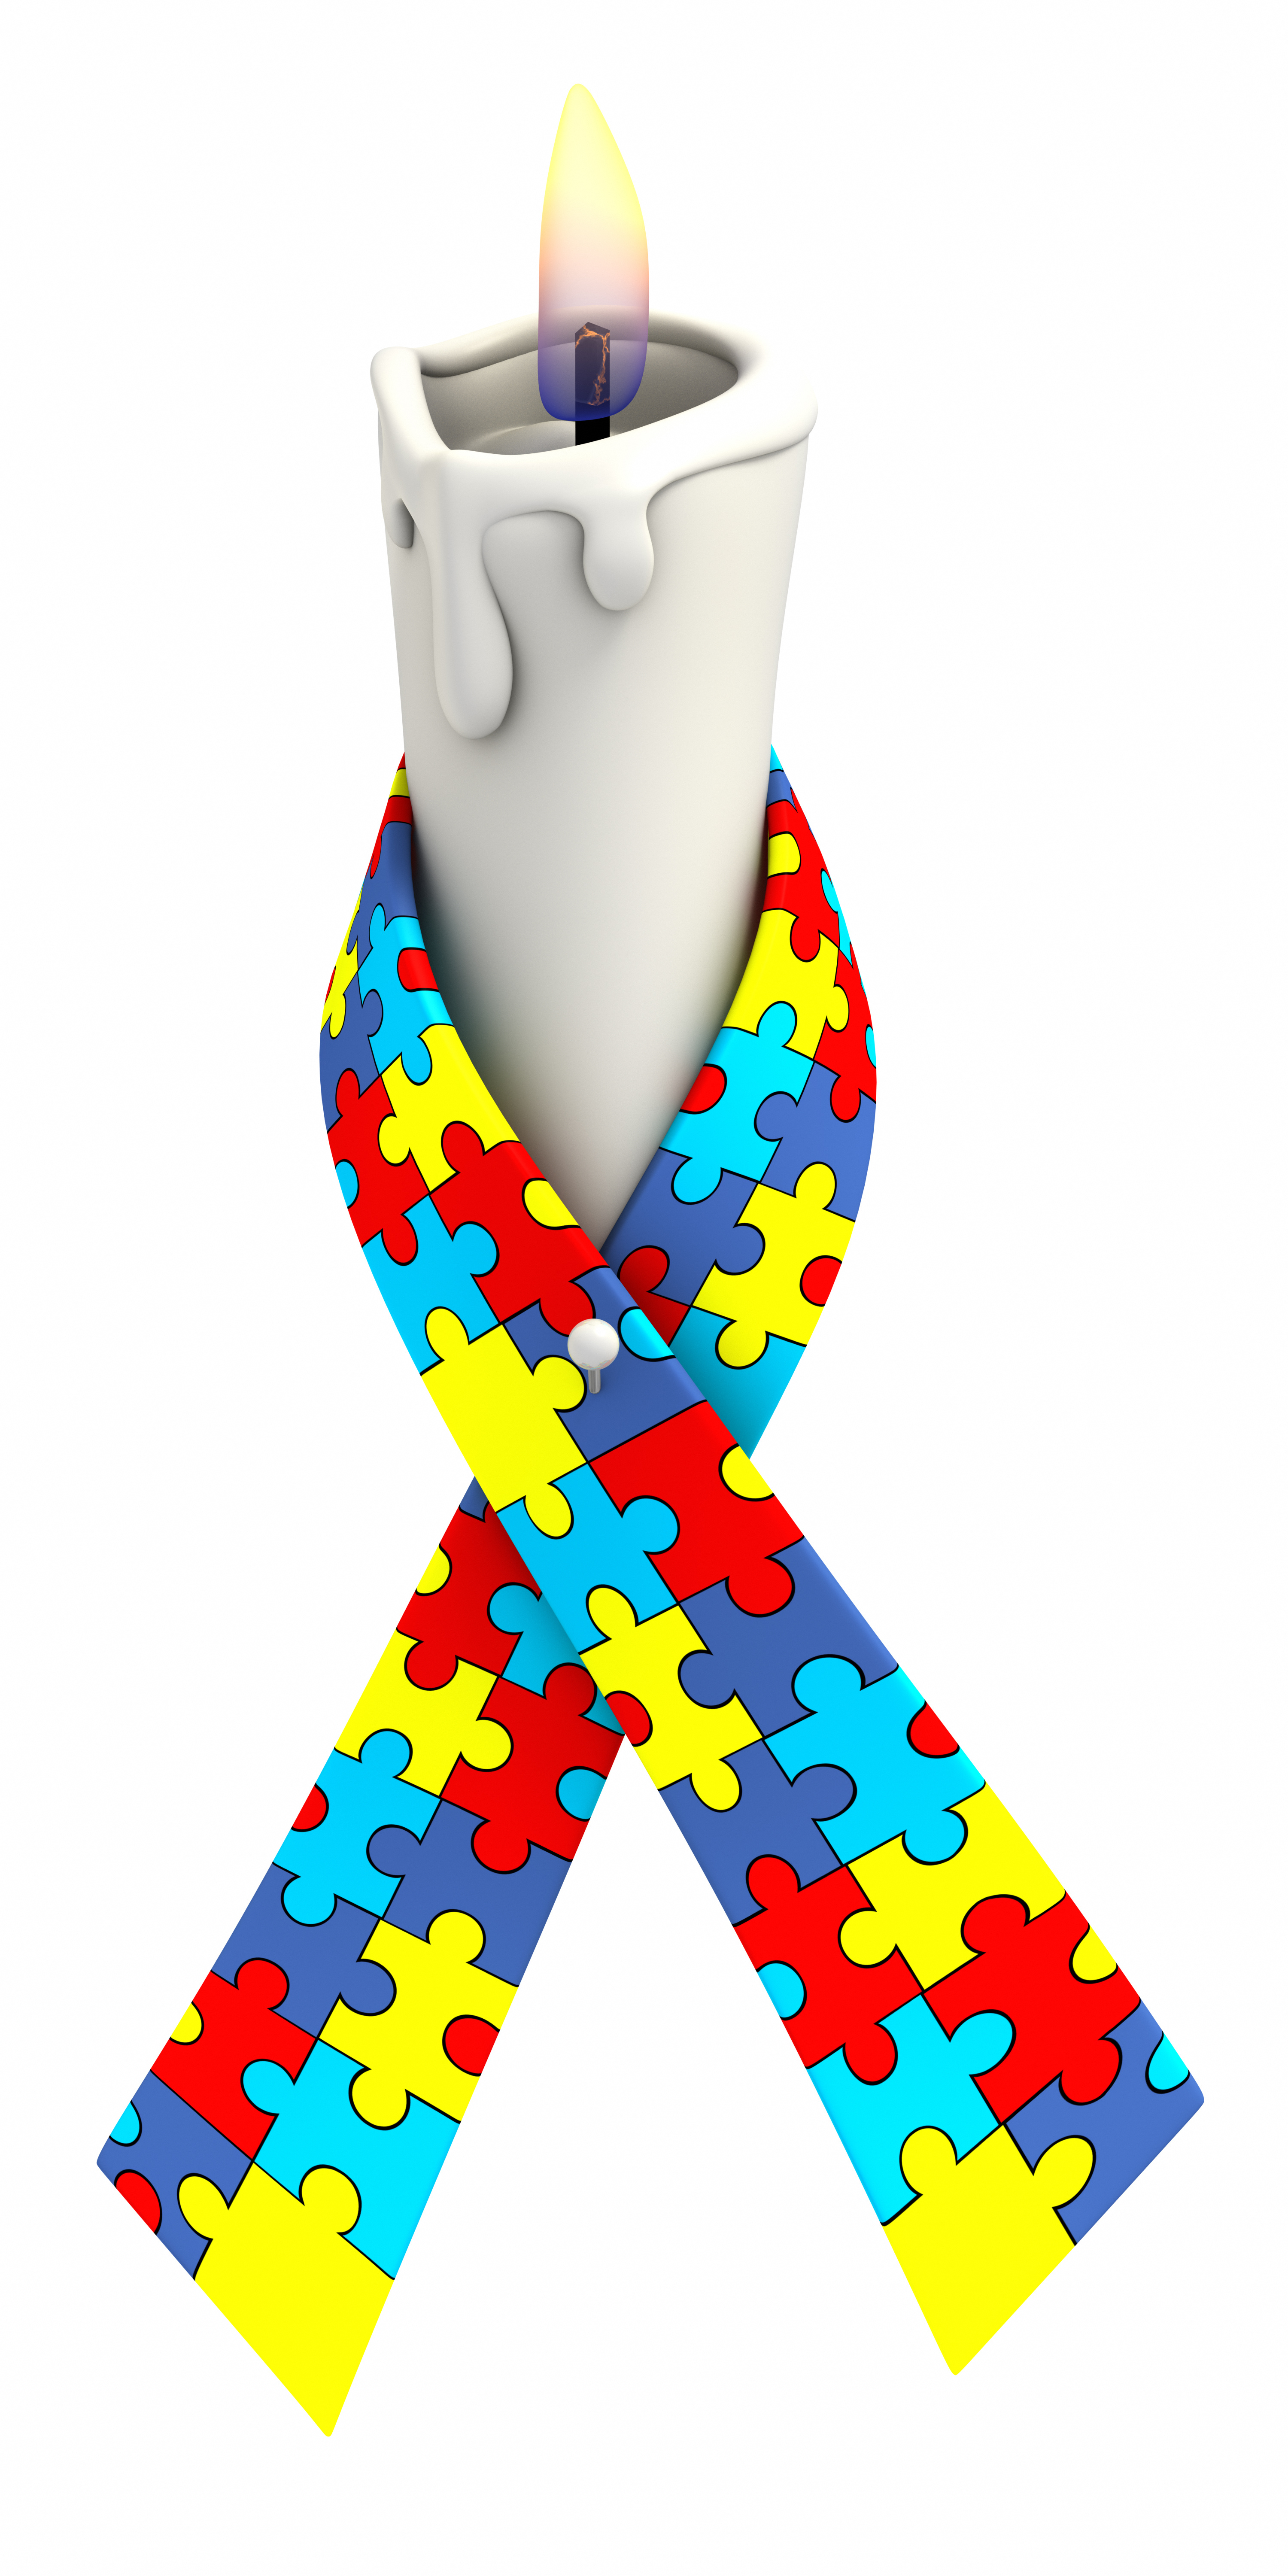 WebTeam Corp Sets Autism Independence Goals In 2013